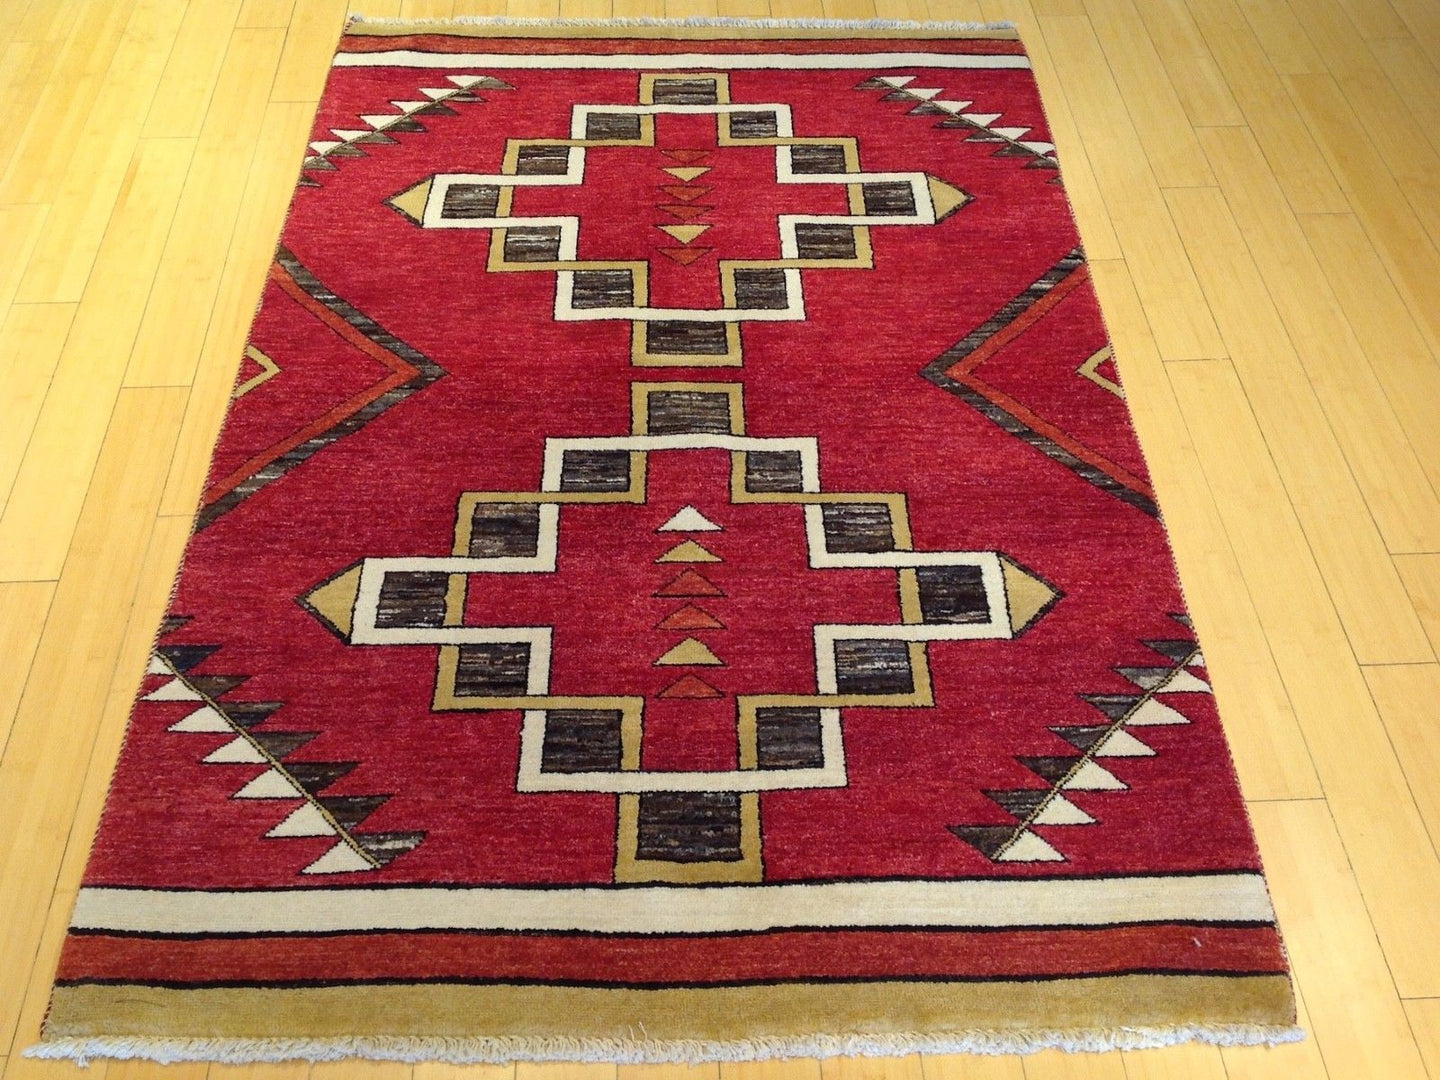 Oriental rugs, hand-knotted carpets, sustainable rugs, classic world oriental rugs, handmade, United States, interior design,  Brrsf-4830